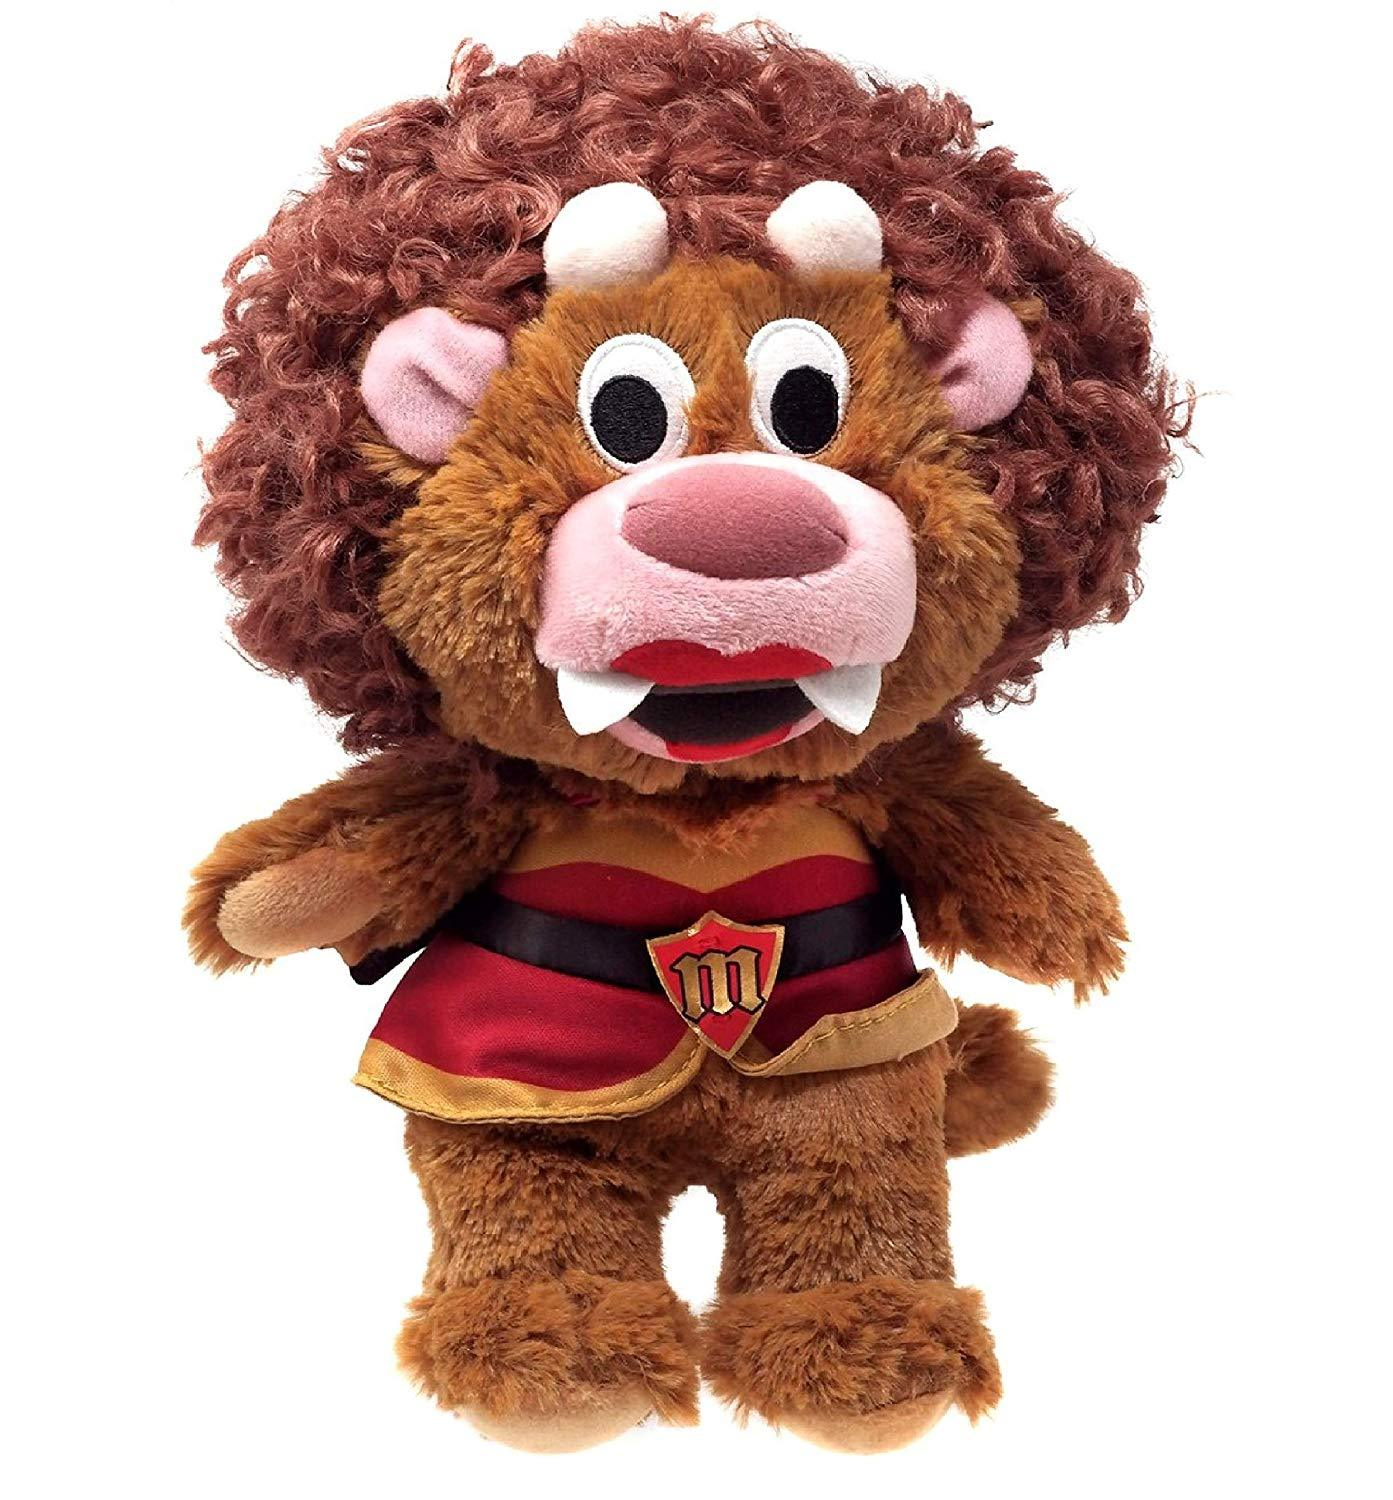 Disney Pixar Onward Movie Manticore Plush Toys My Moppet Shop